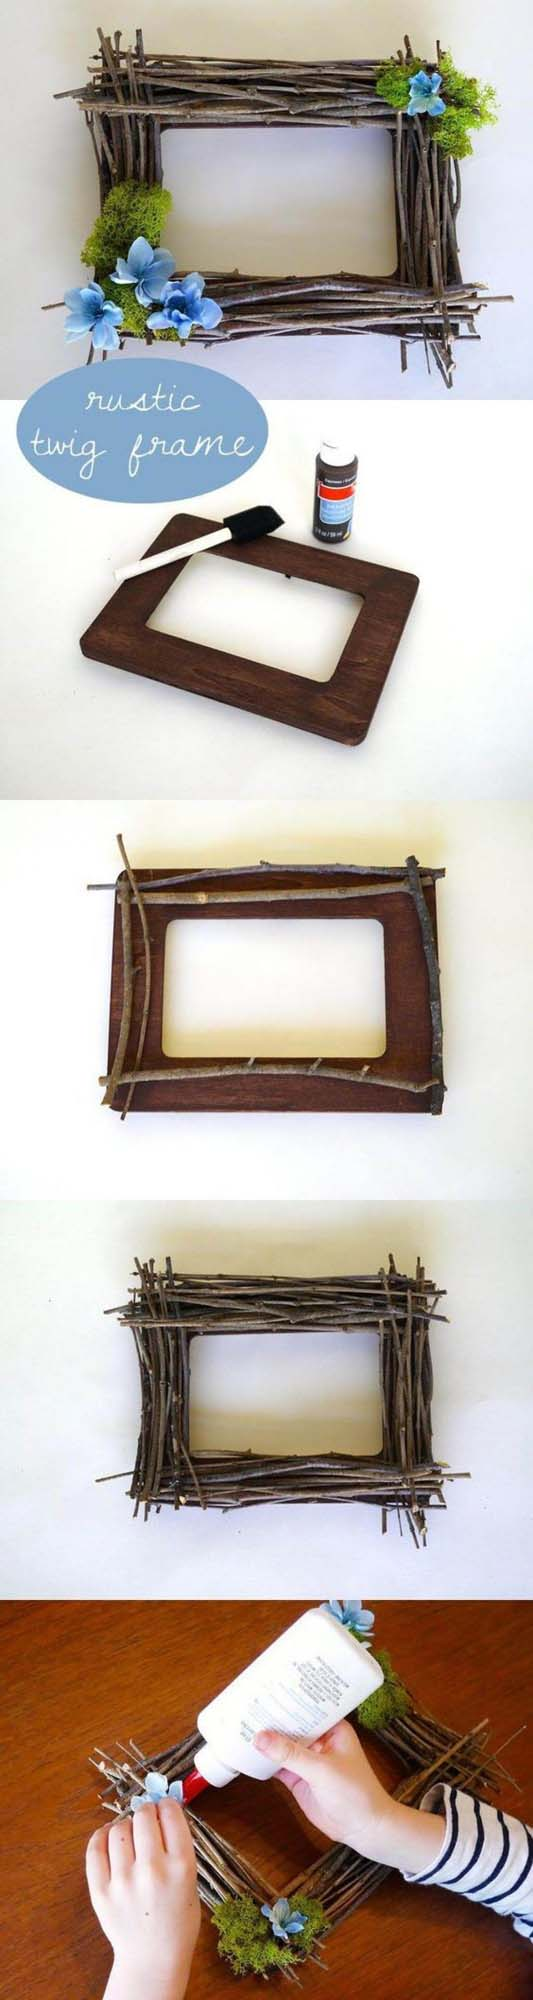 DIY Rustic Twig Frame #branches #homedecor #decorhomeideas